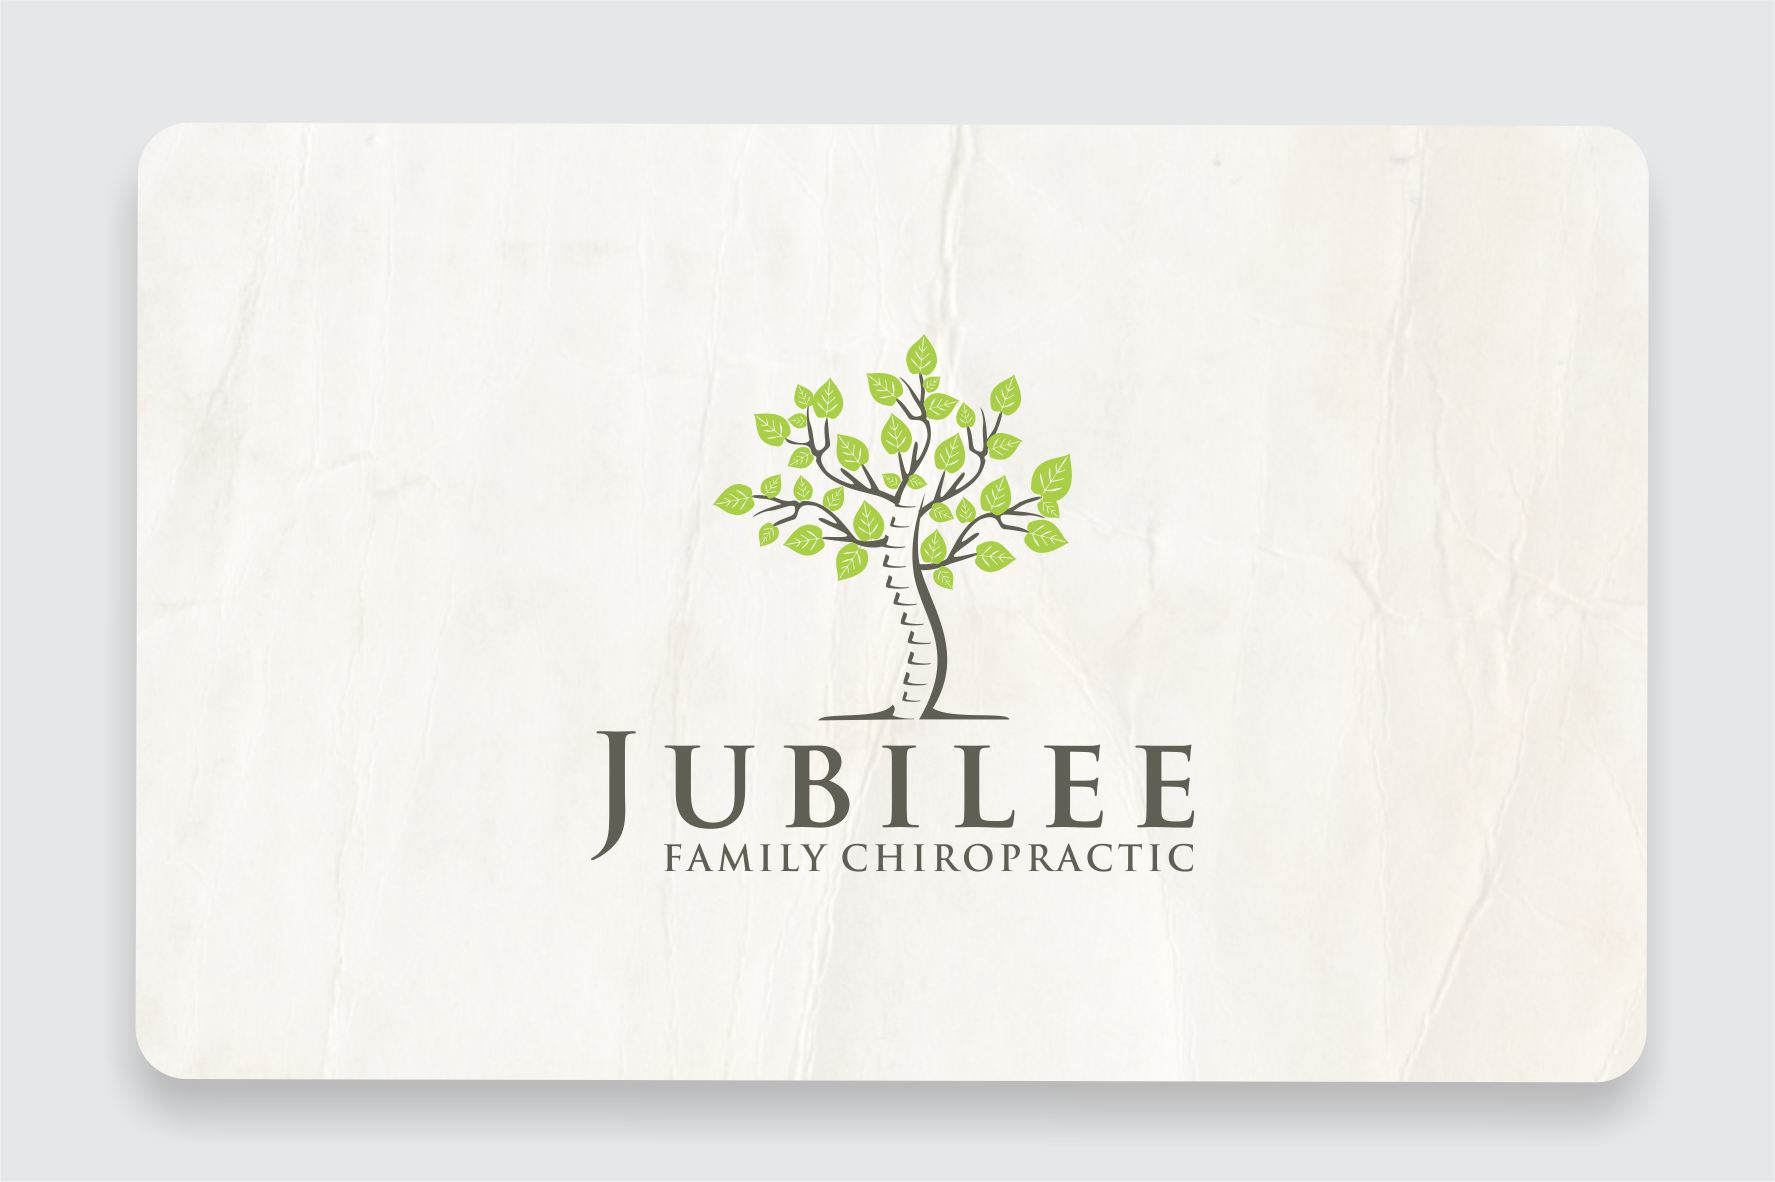 Help Jubilee Family Chiropractic with a new awesome logo!